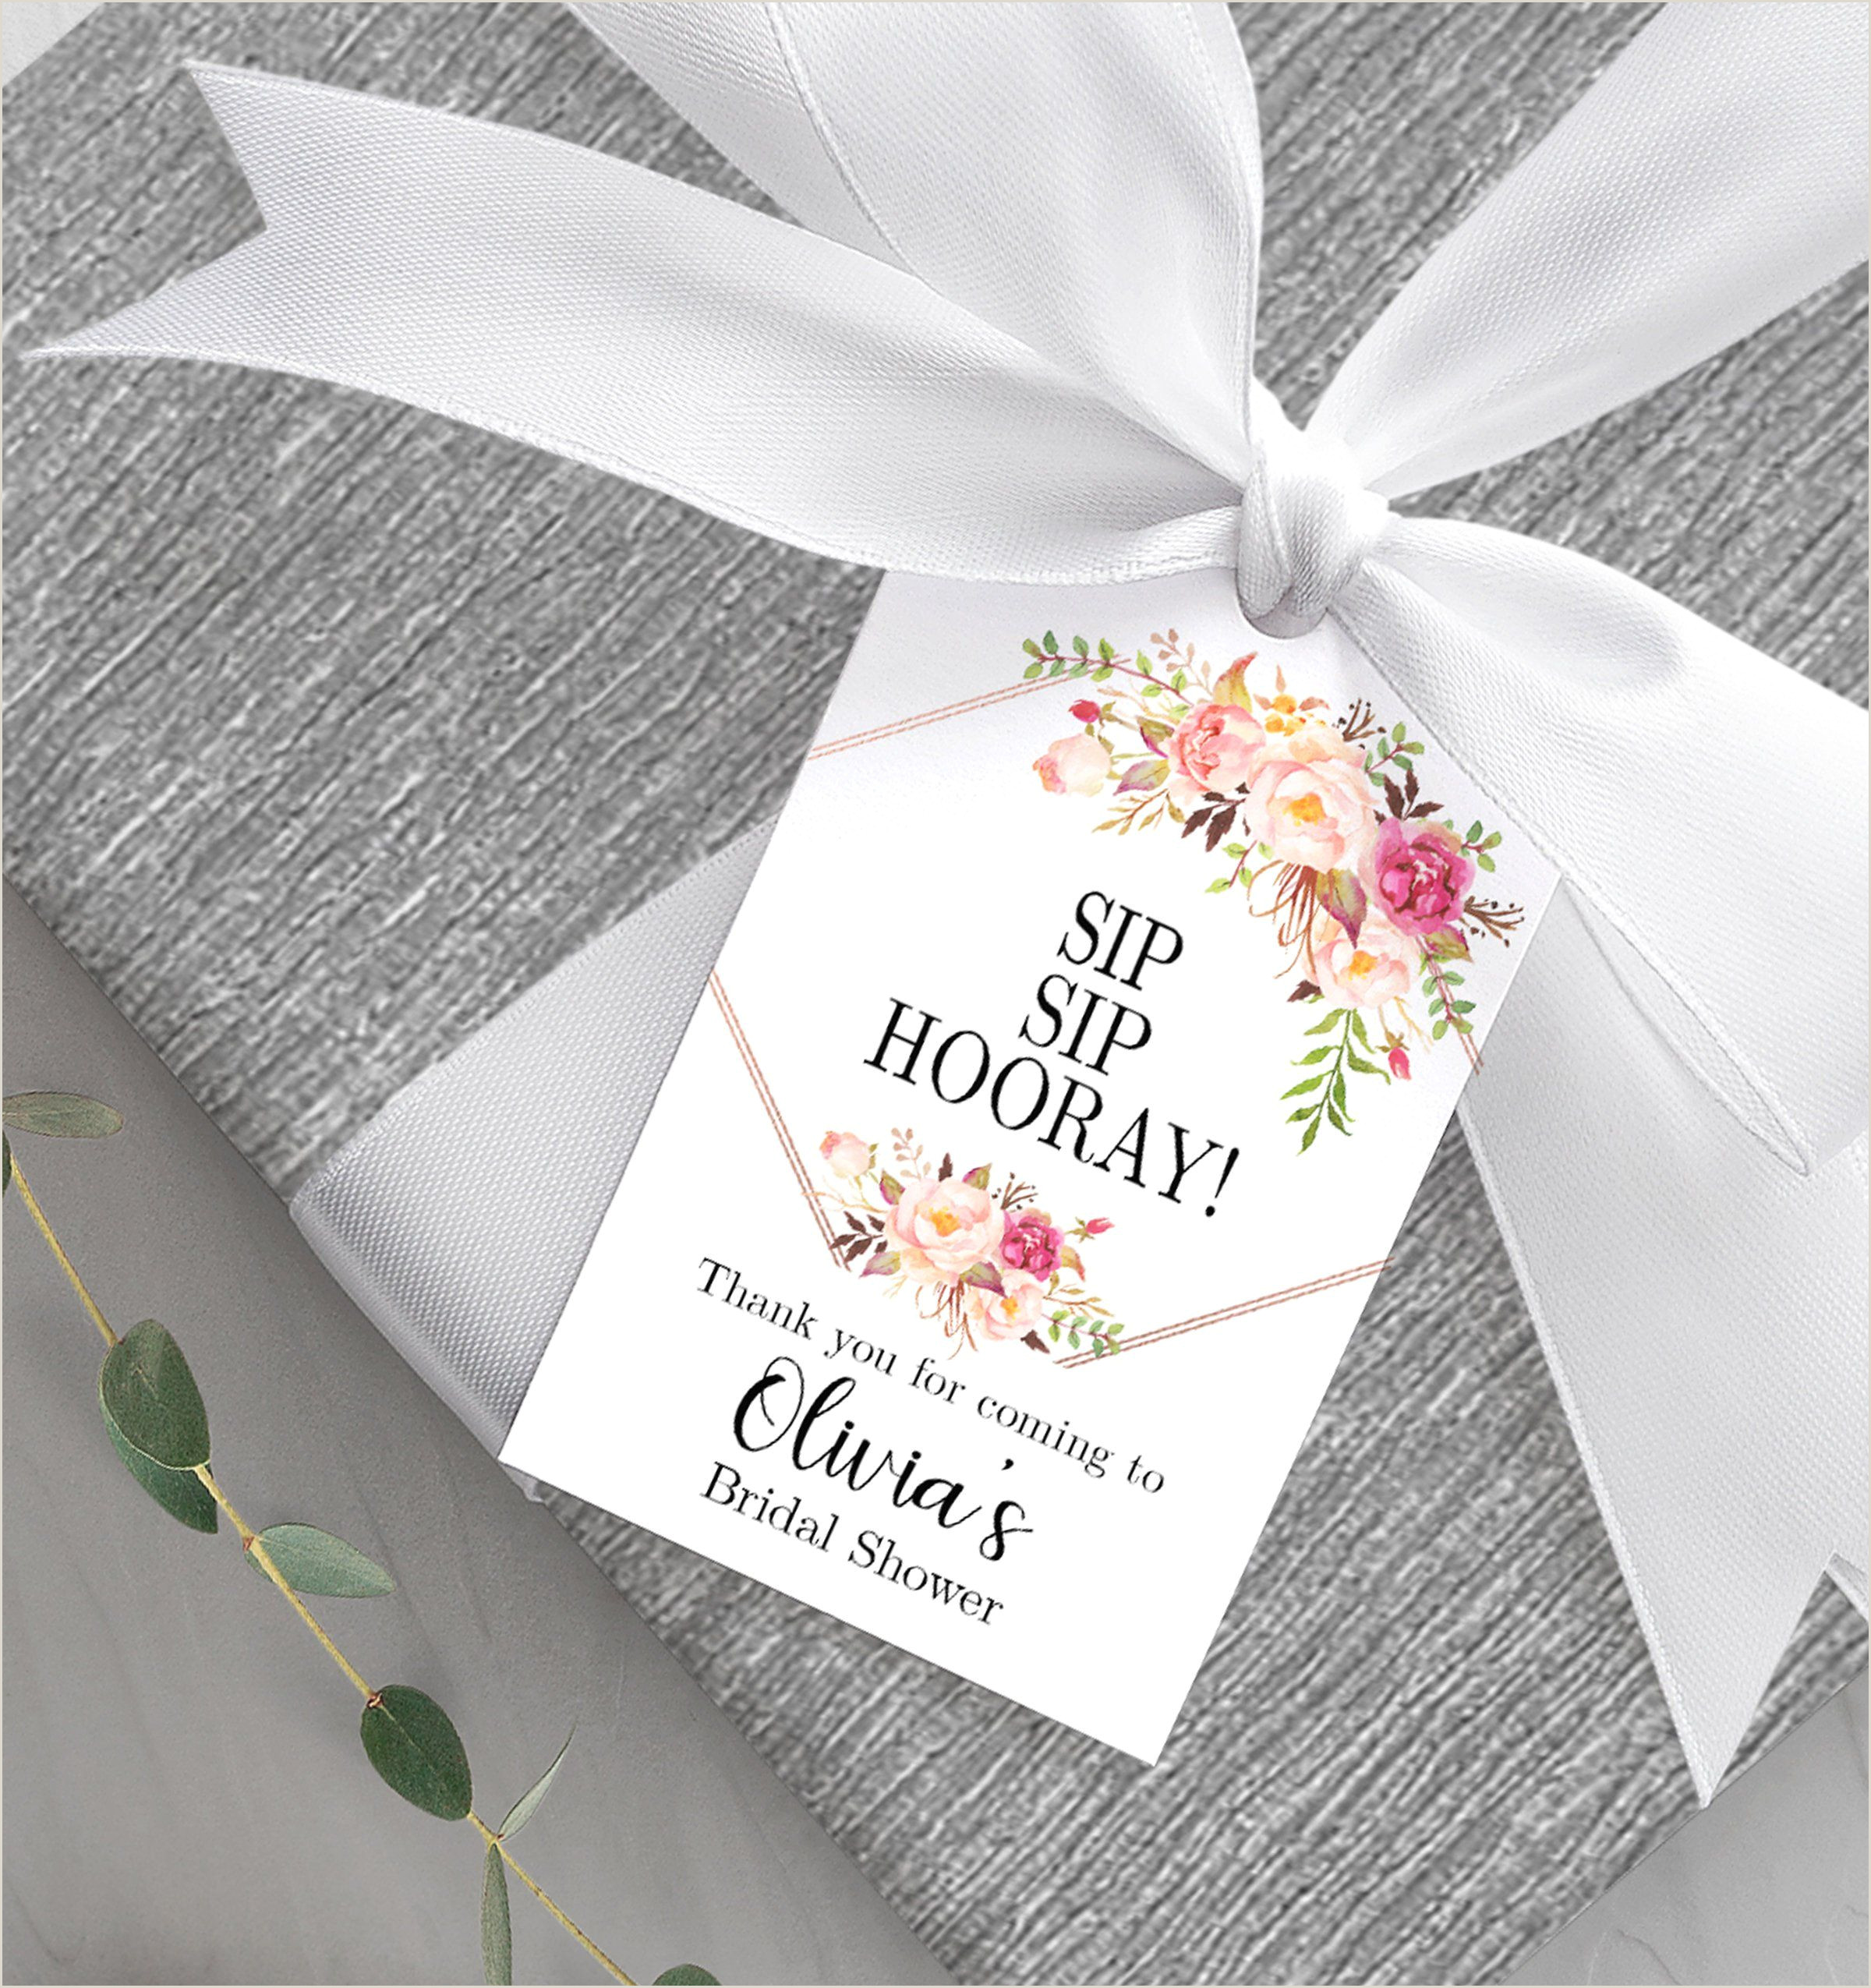 Wedding Favors Tags Template Bridal Shower Favor Tag Printable Sip Sip Hooray Tag